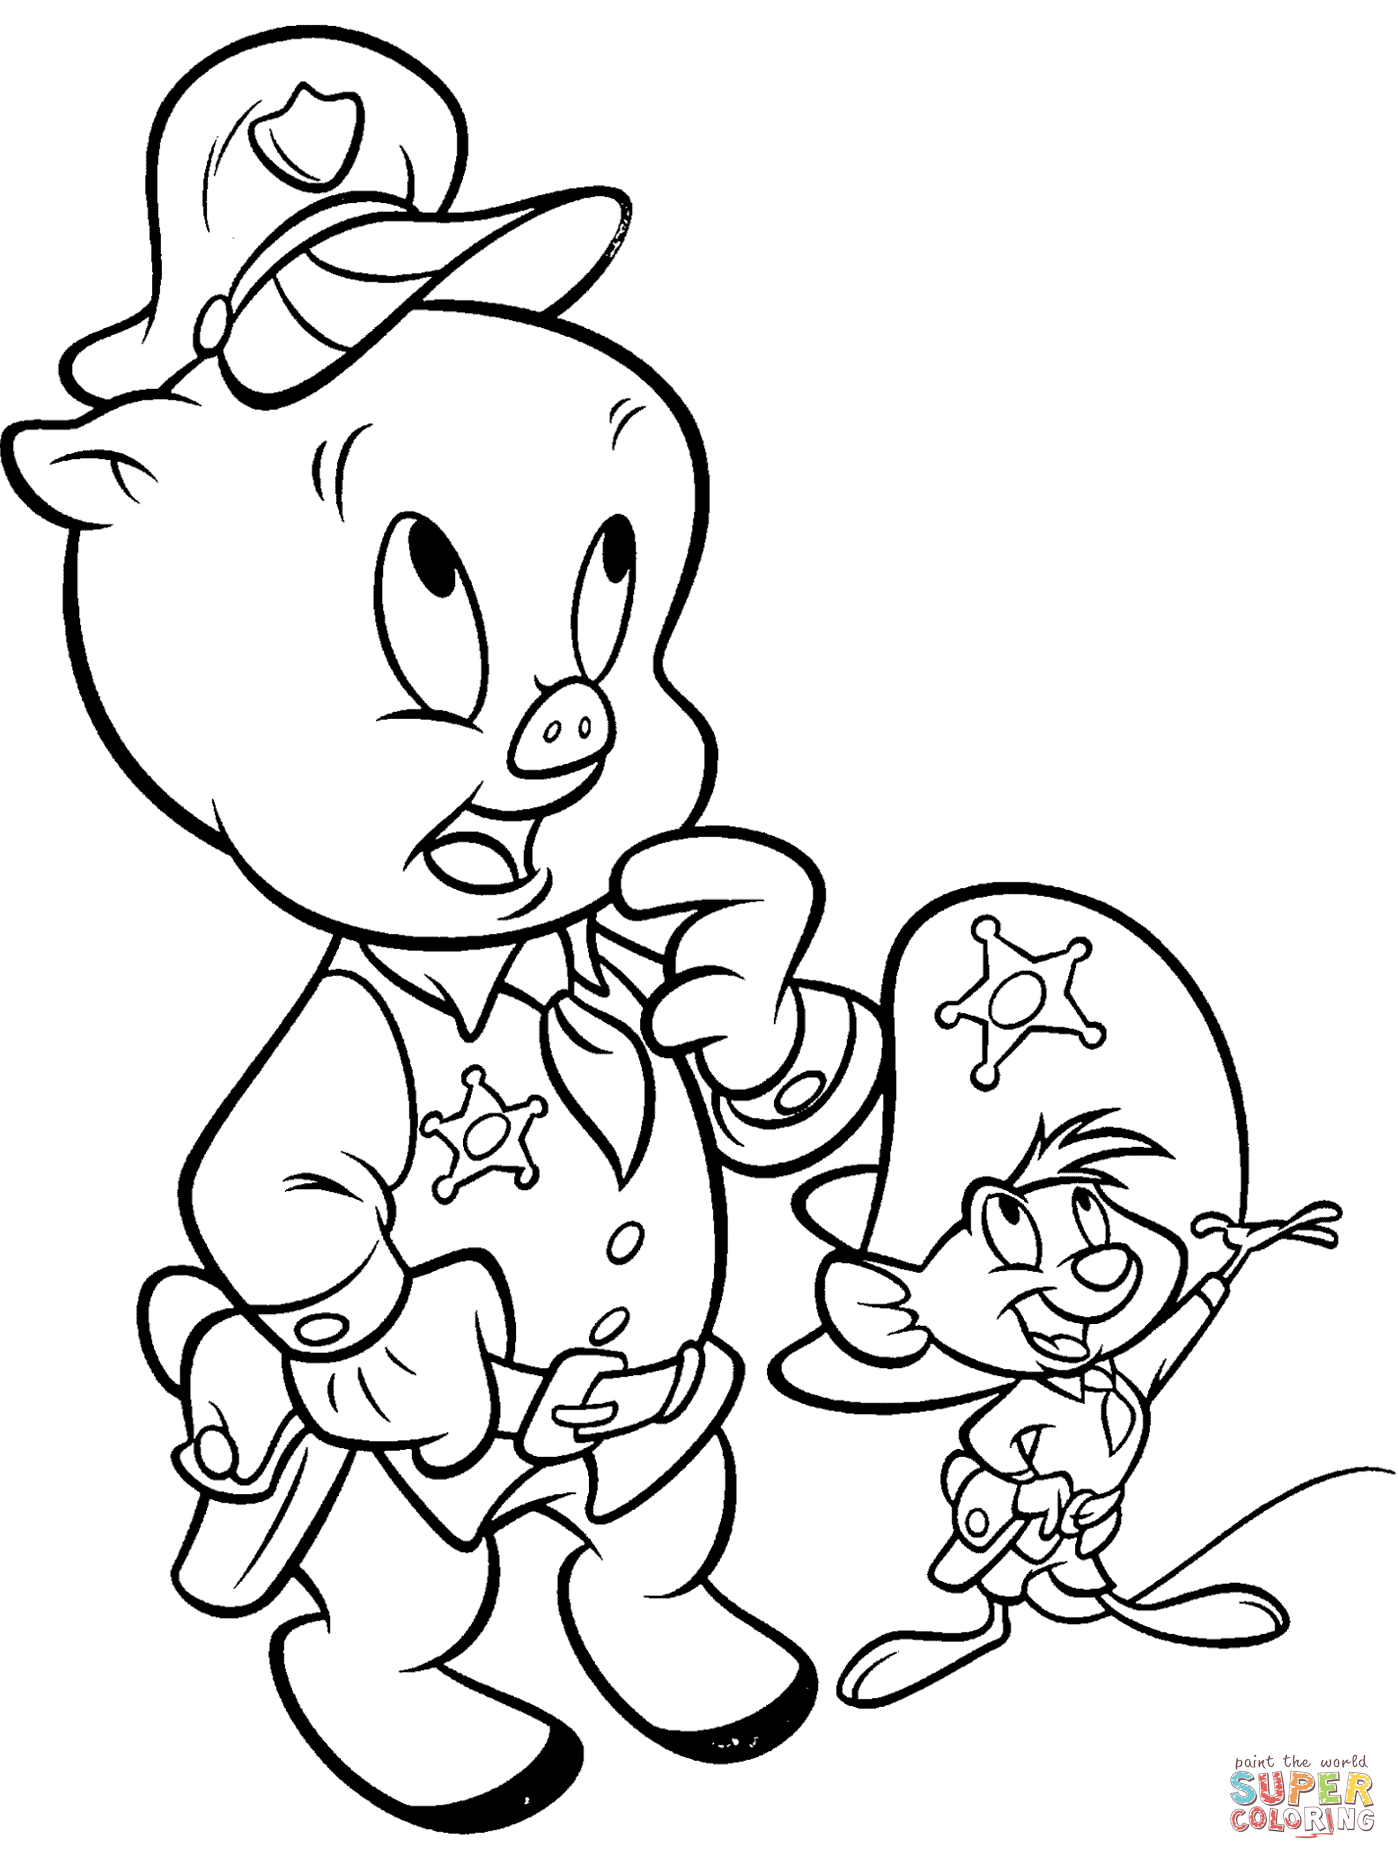 Porky Pig And Speedy Gonzalez Coloring Page